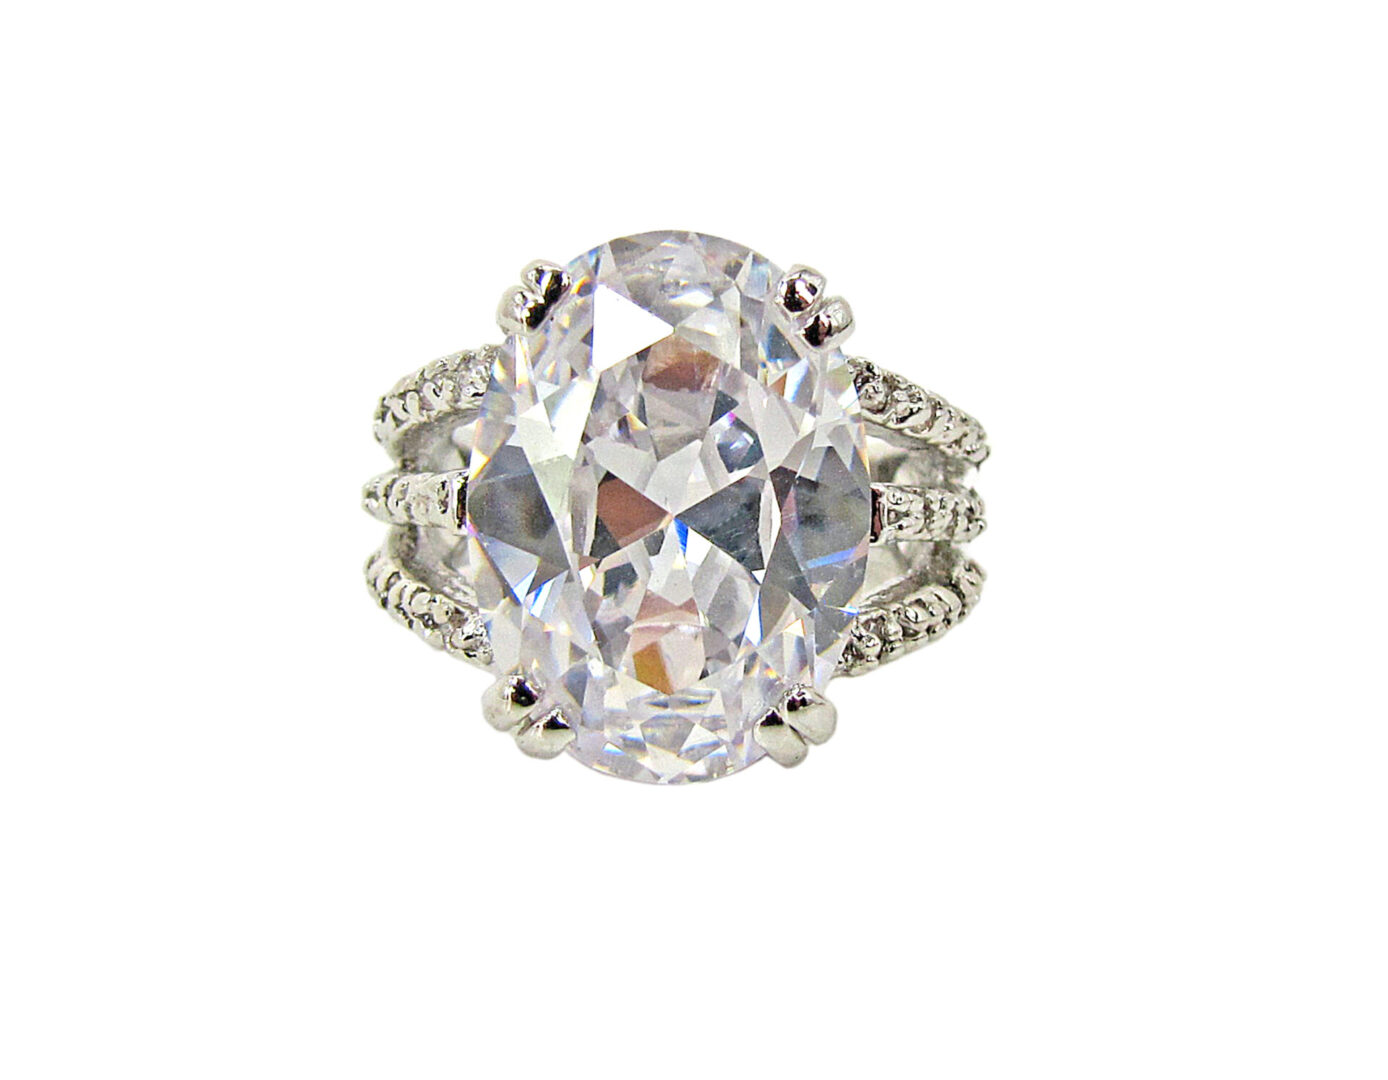 ring with large white oval crystal